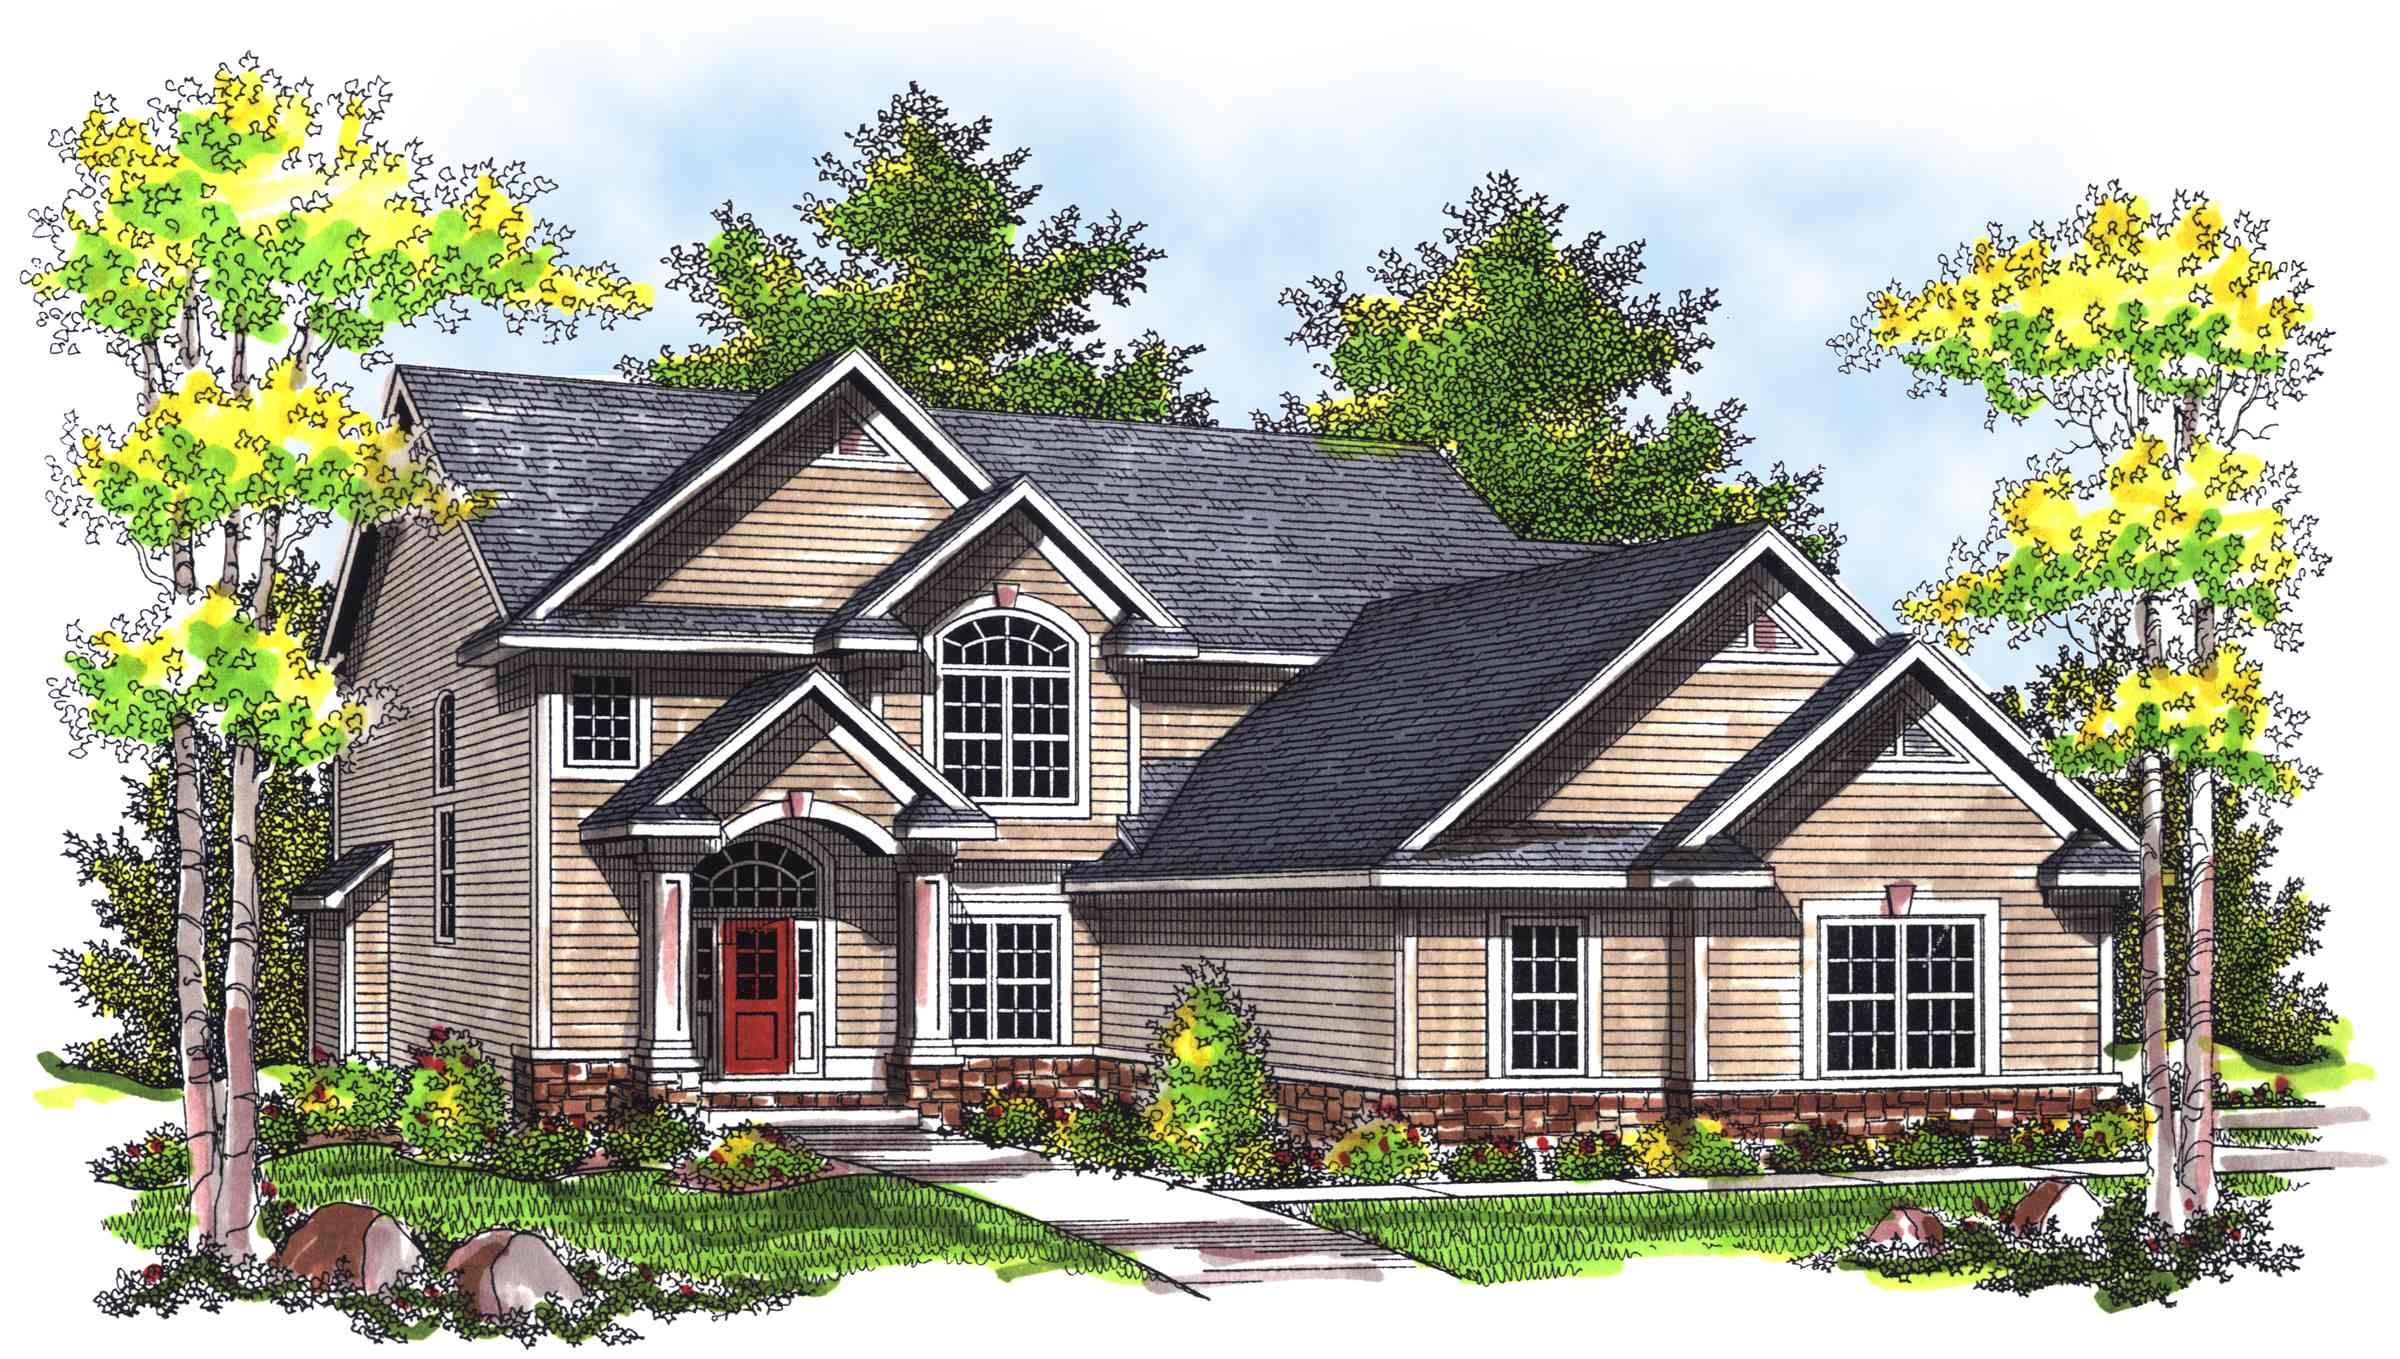 Traditional two story home plan 89323ah 2nd floor for Traditional 2 story house